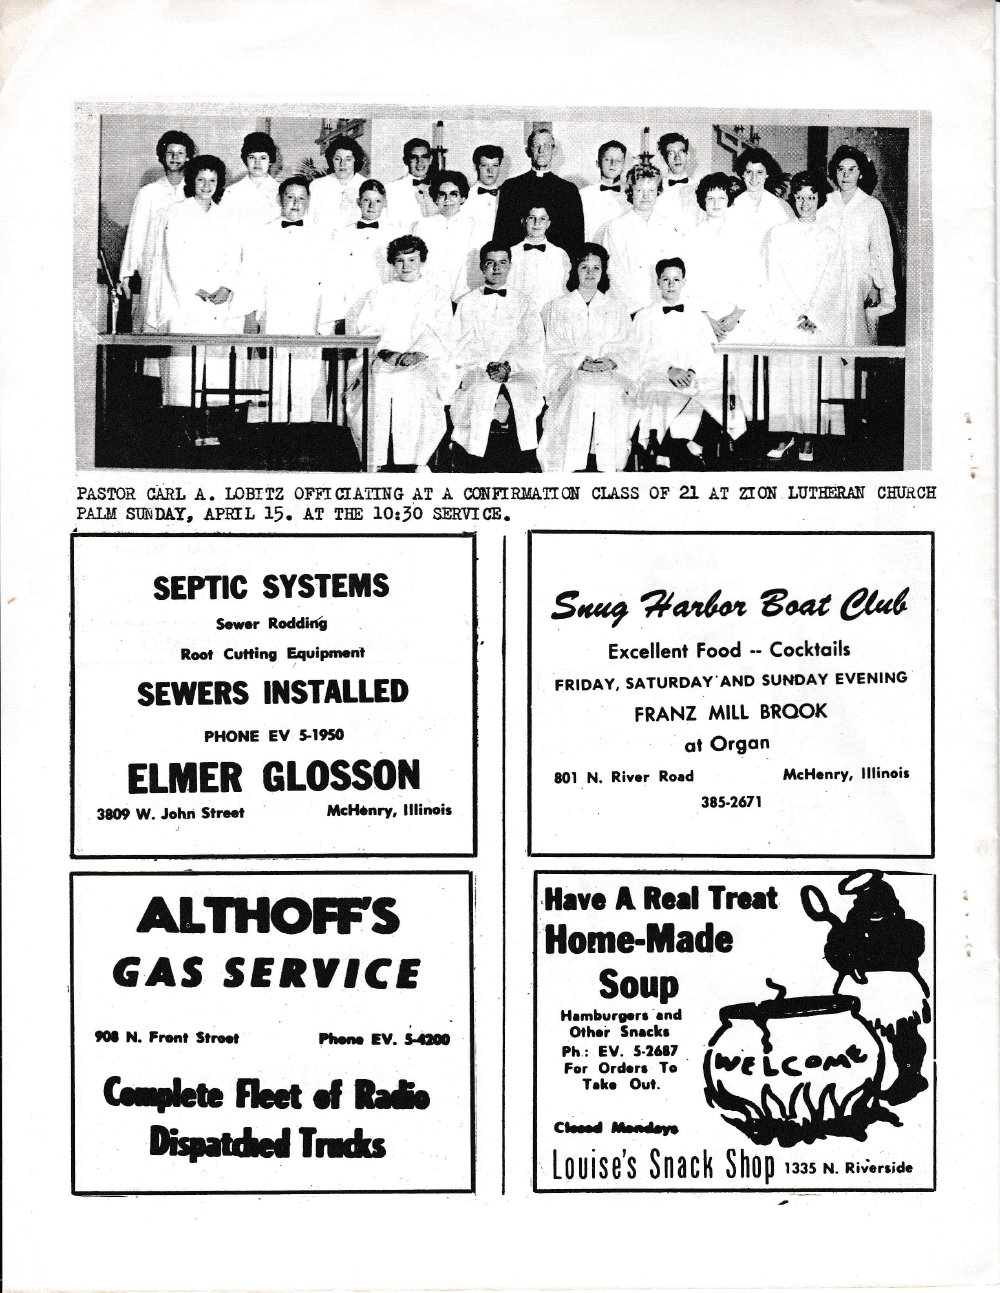 The Pictorial Newsletter: April 25, 1962